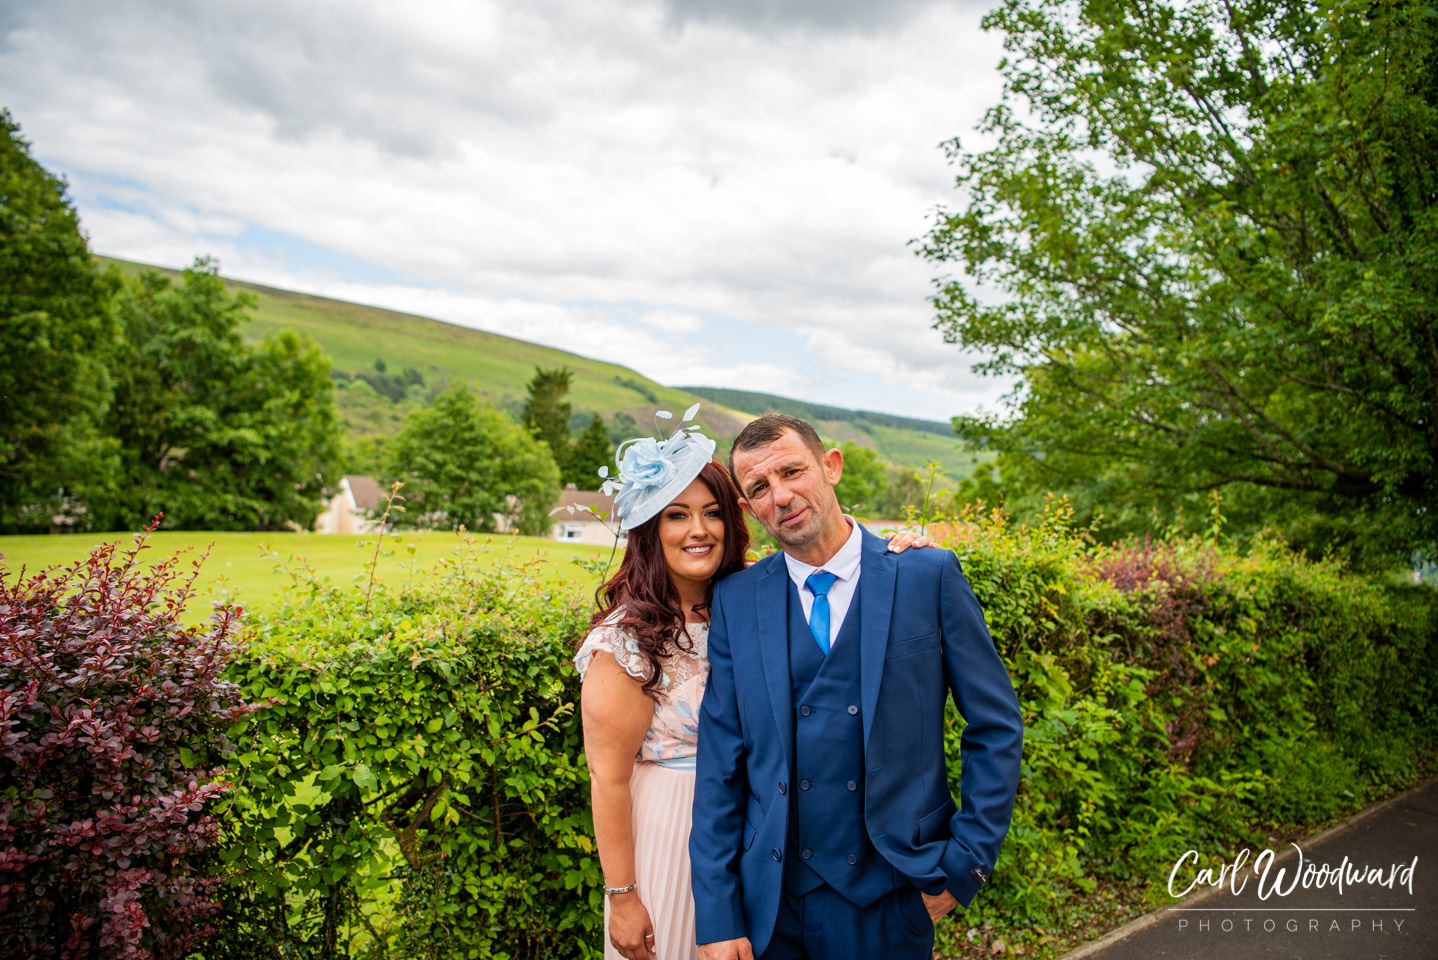 016-Mountain-Ash-Golf-Club-Wedding-Cardiff-Wedding-Photography.jpg